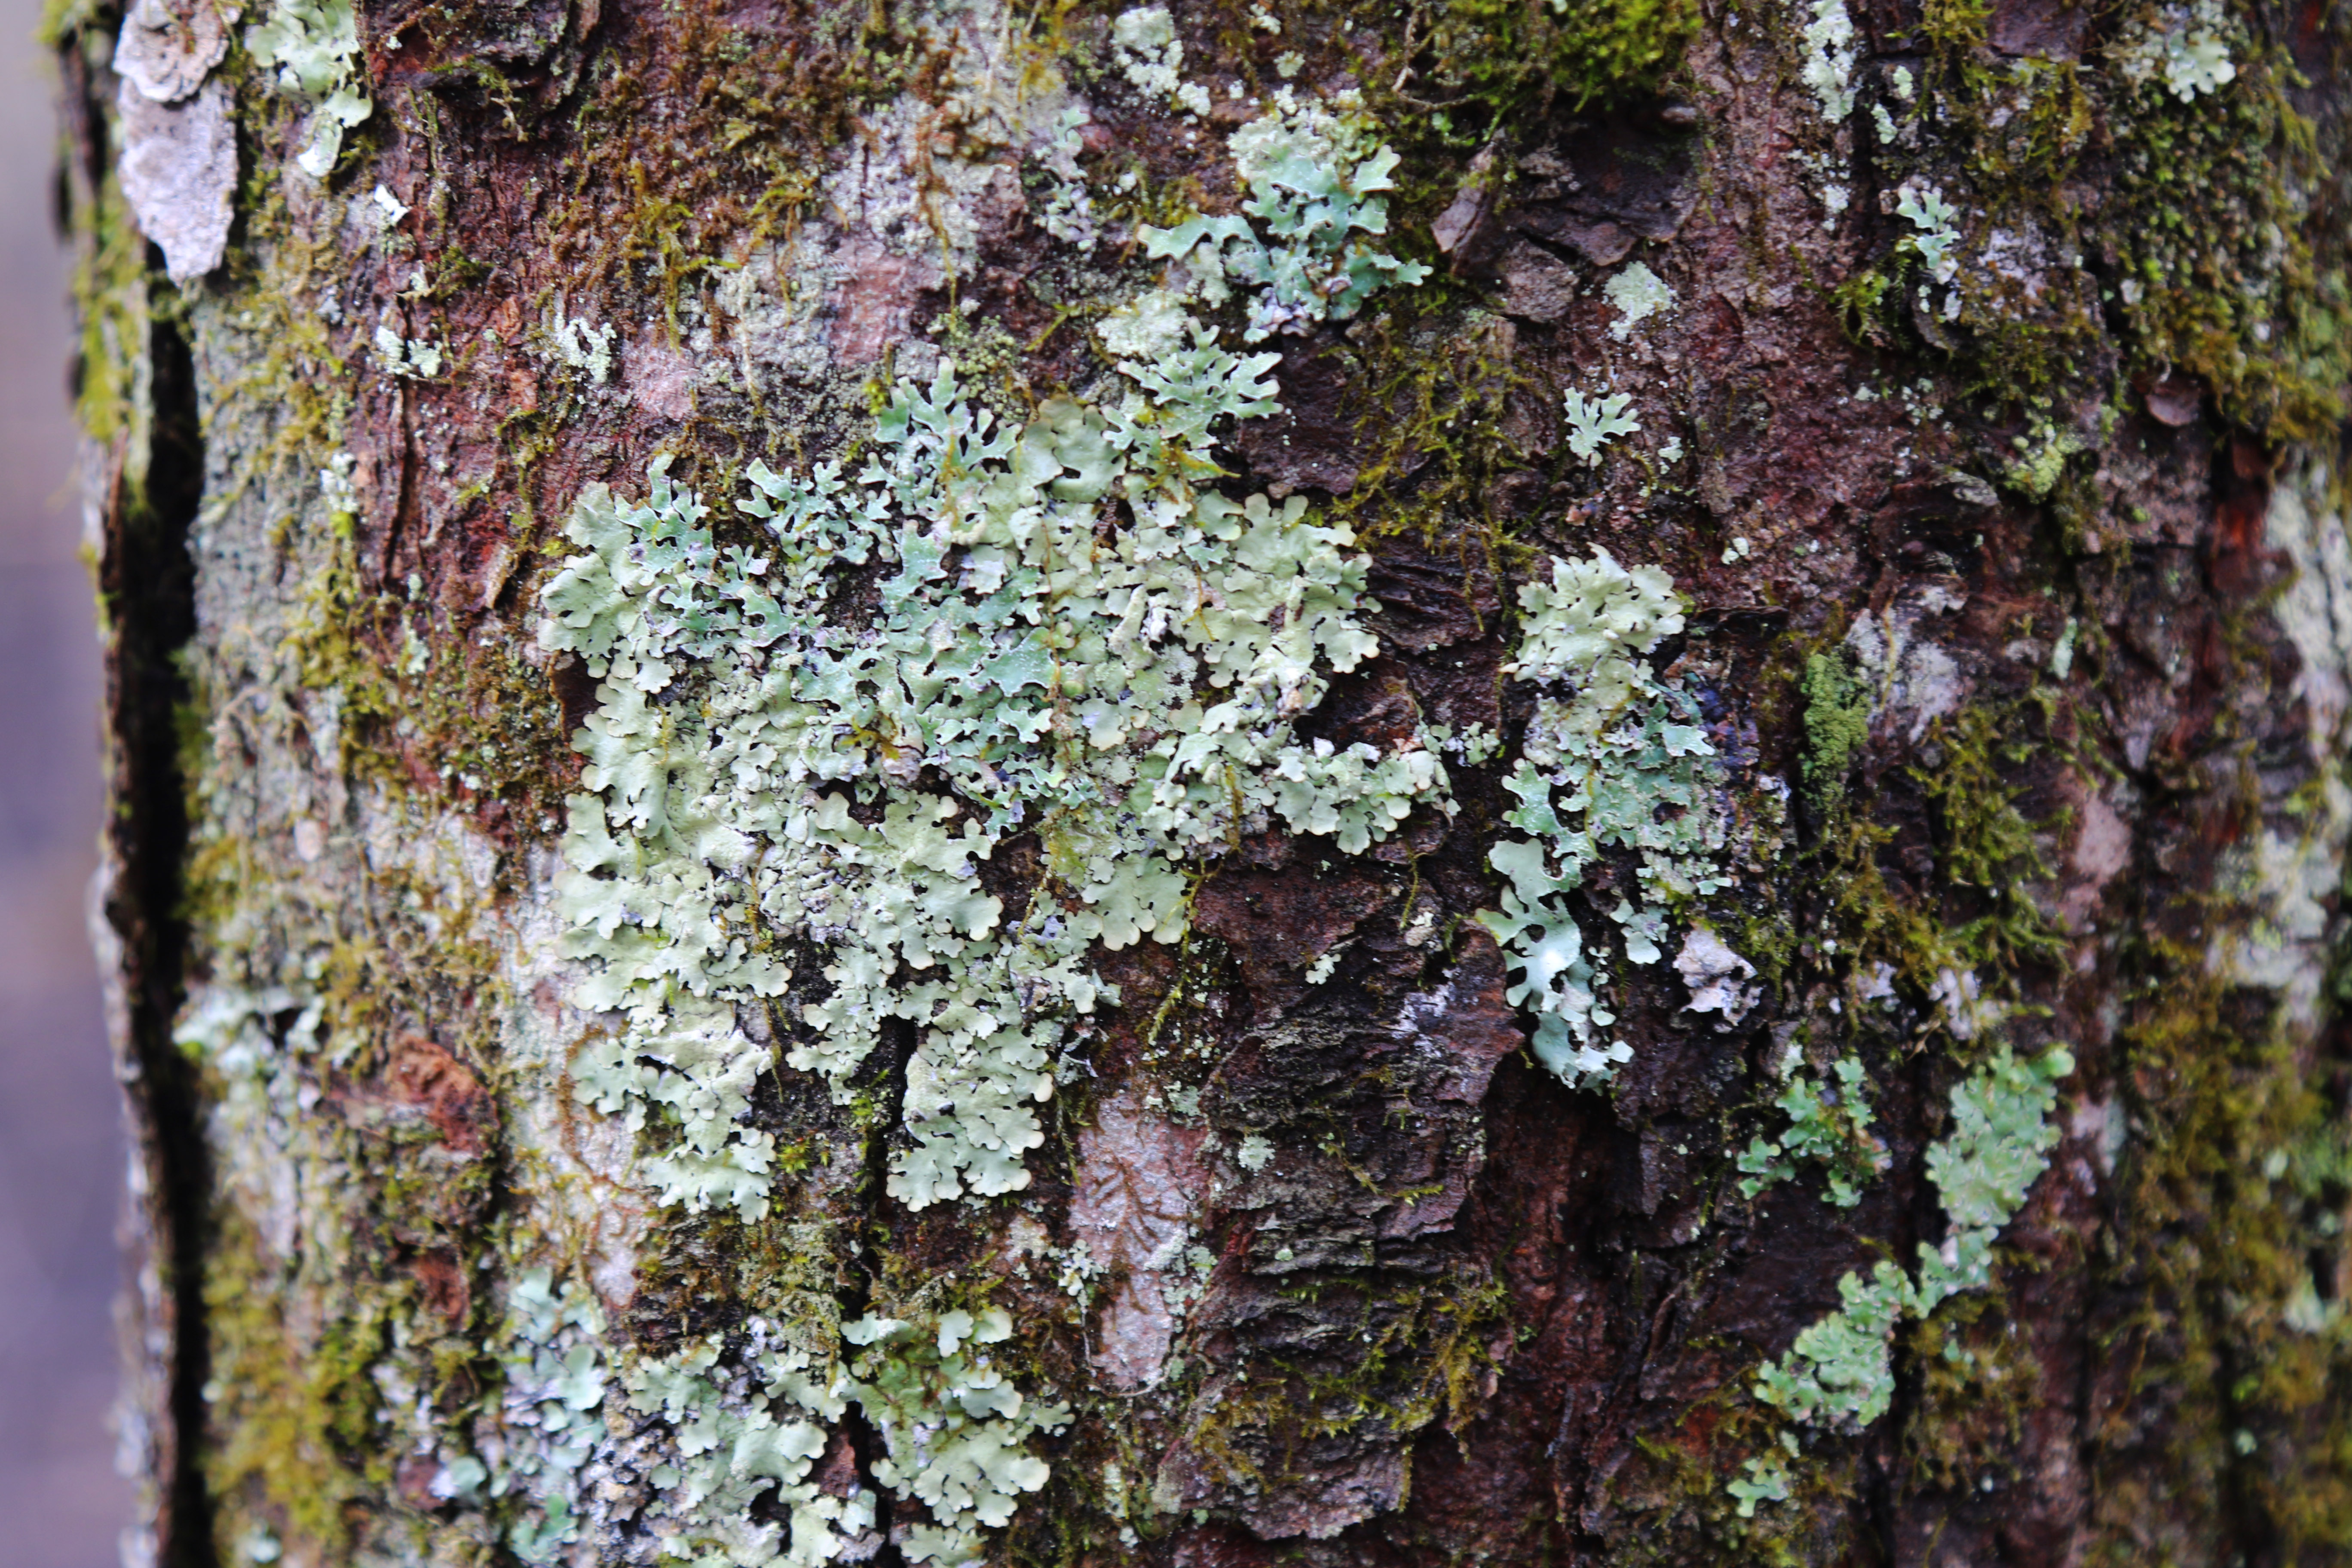 Moss and licehn growing on a tree